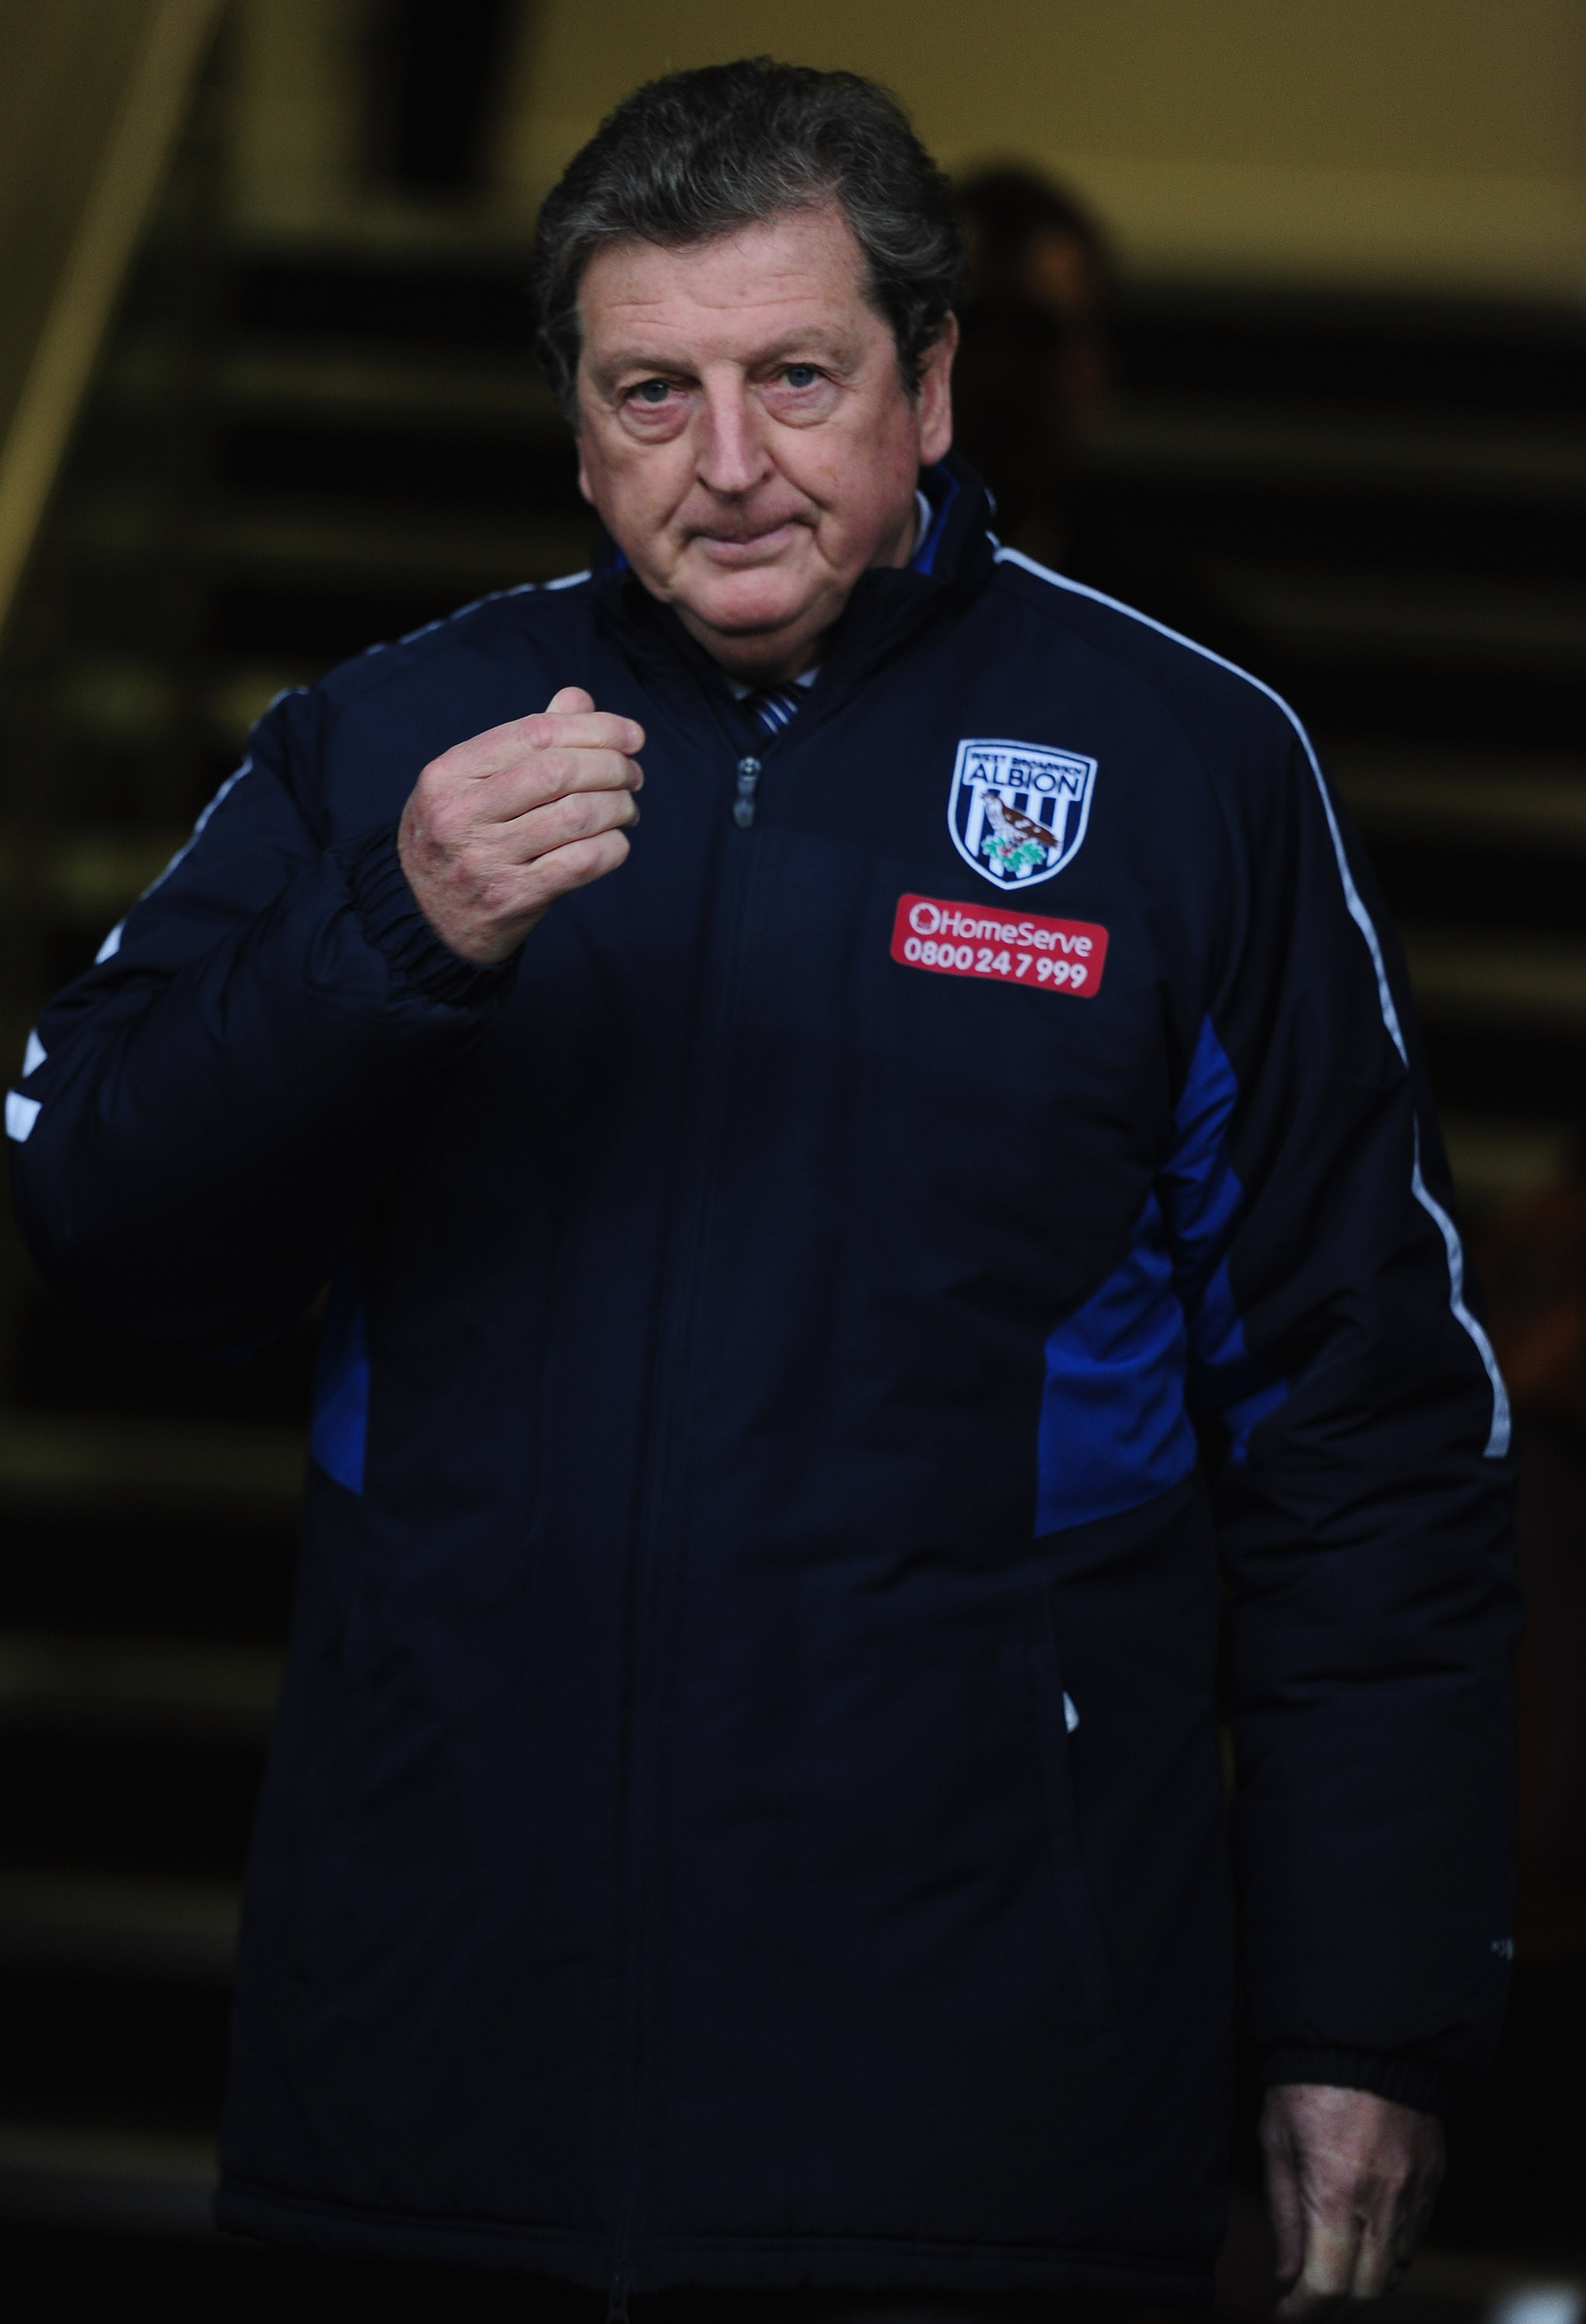 WEST BROMWICH, ENGLAND - FEBRUARY 20:  Roy Hodgson, manager of West Bromwich Albion looks on during the Barclays Premier League match between West Bromwich Albion and Wolverhampton Wanderers at The Hawthorns on February 20, 2011 in West Bromwich, England.